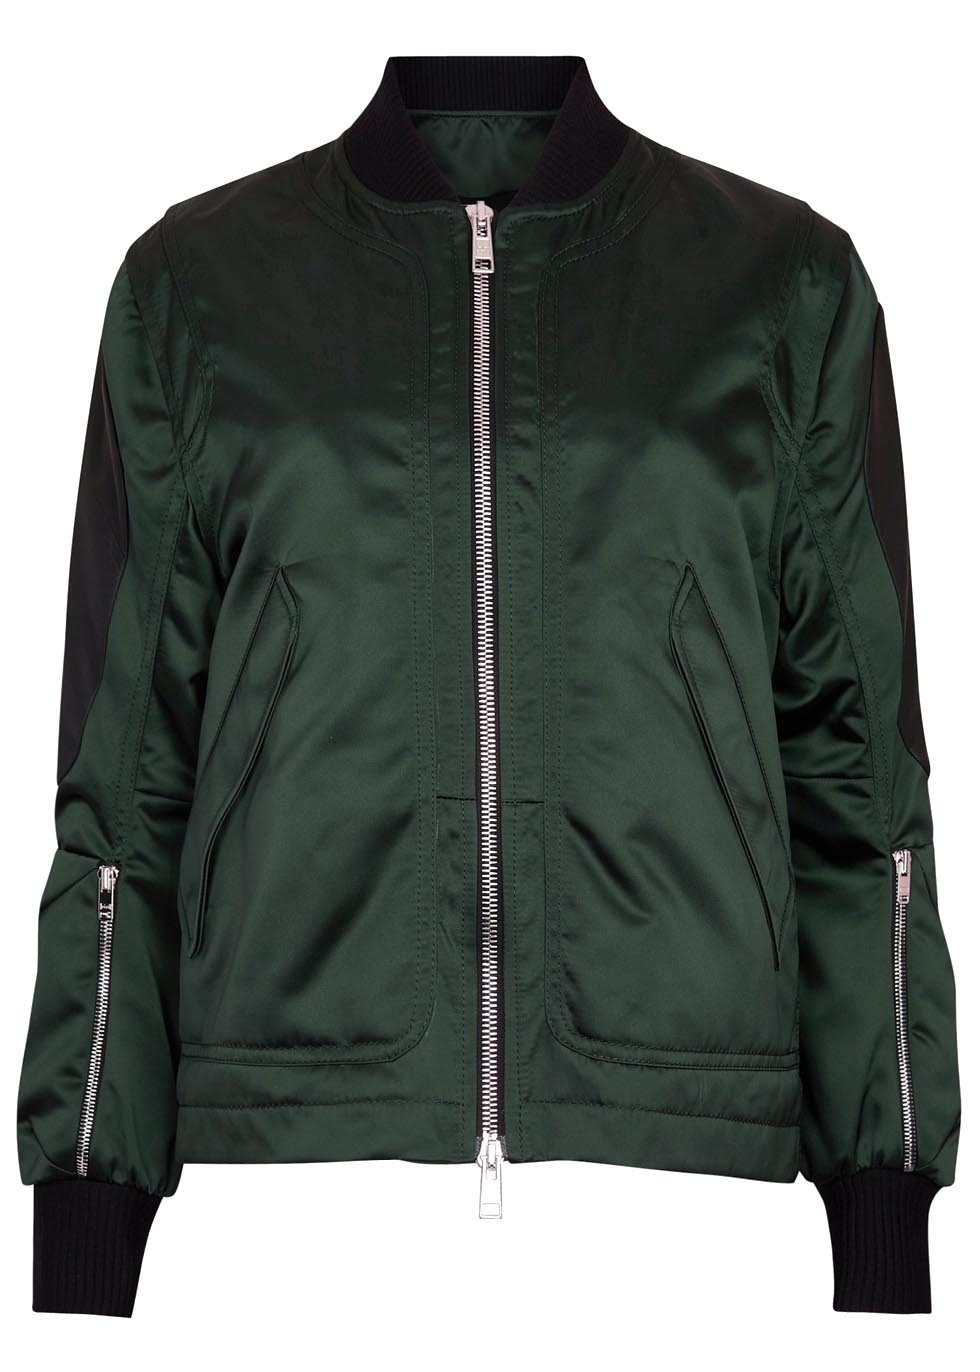 Tim coppens Dark Green Leather-trimmed Shell Bomber Jacket in ...